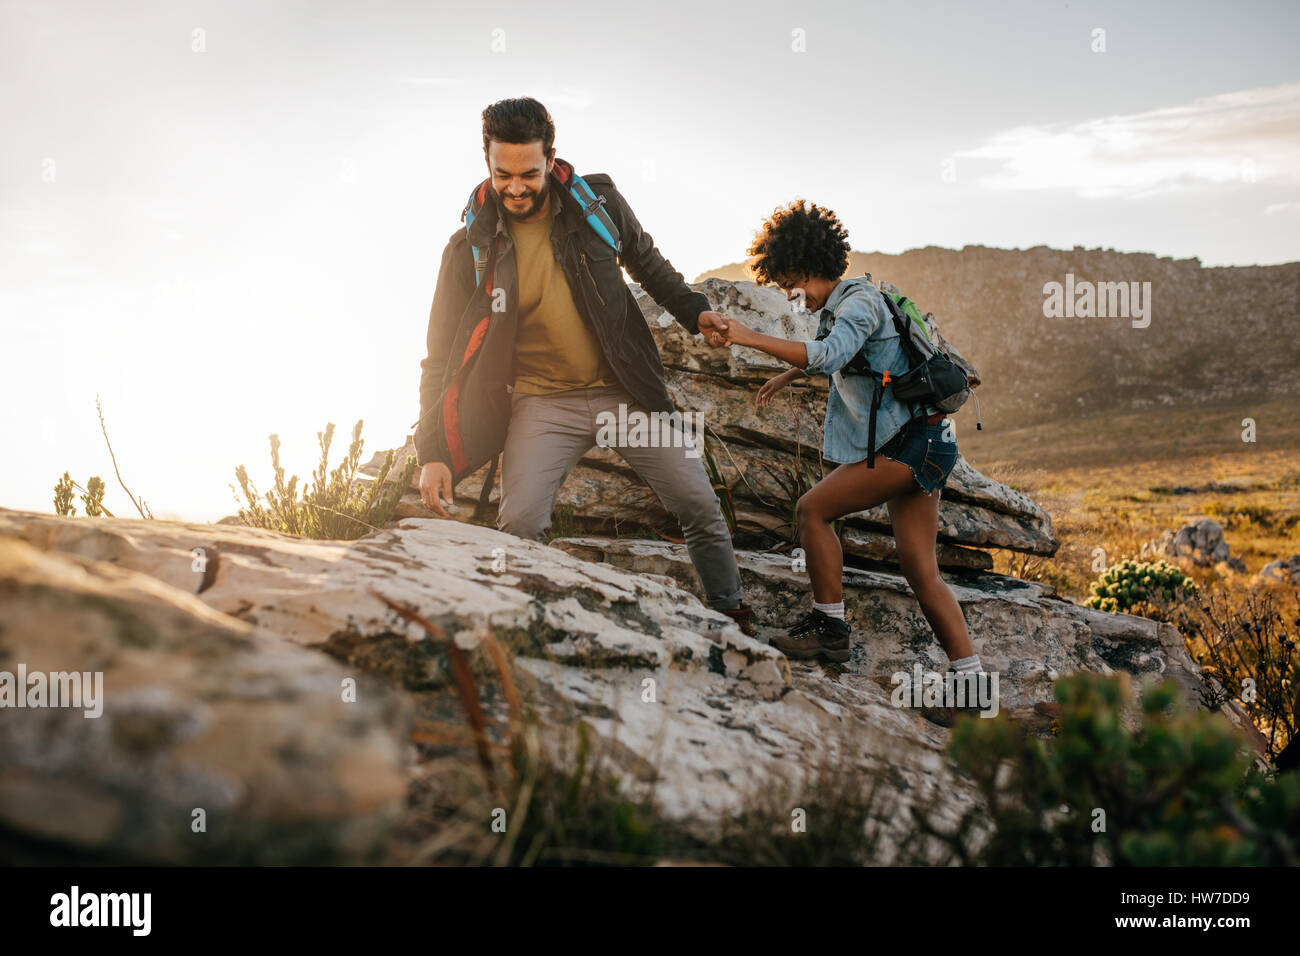 Young man helping friend to climb up the rock. Young couple hiking in nature. - Stock Image